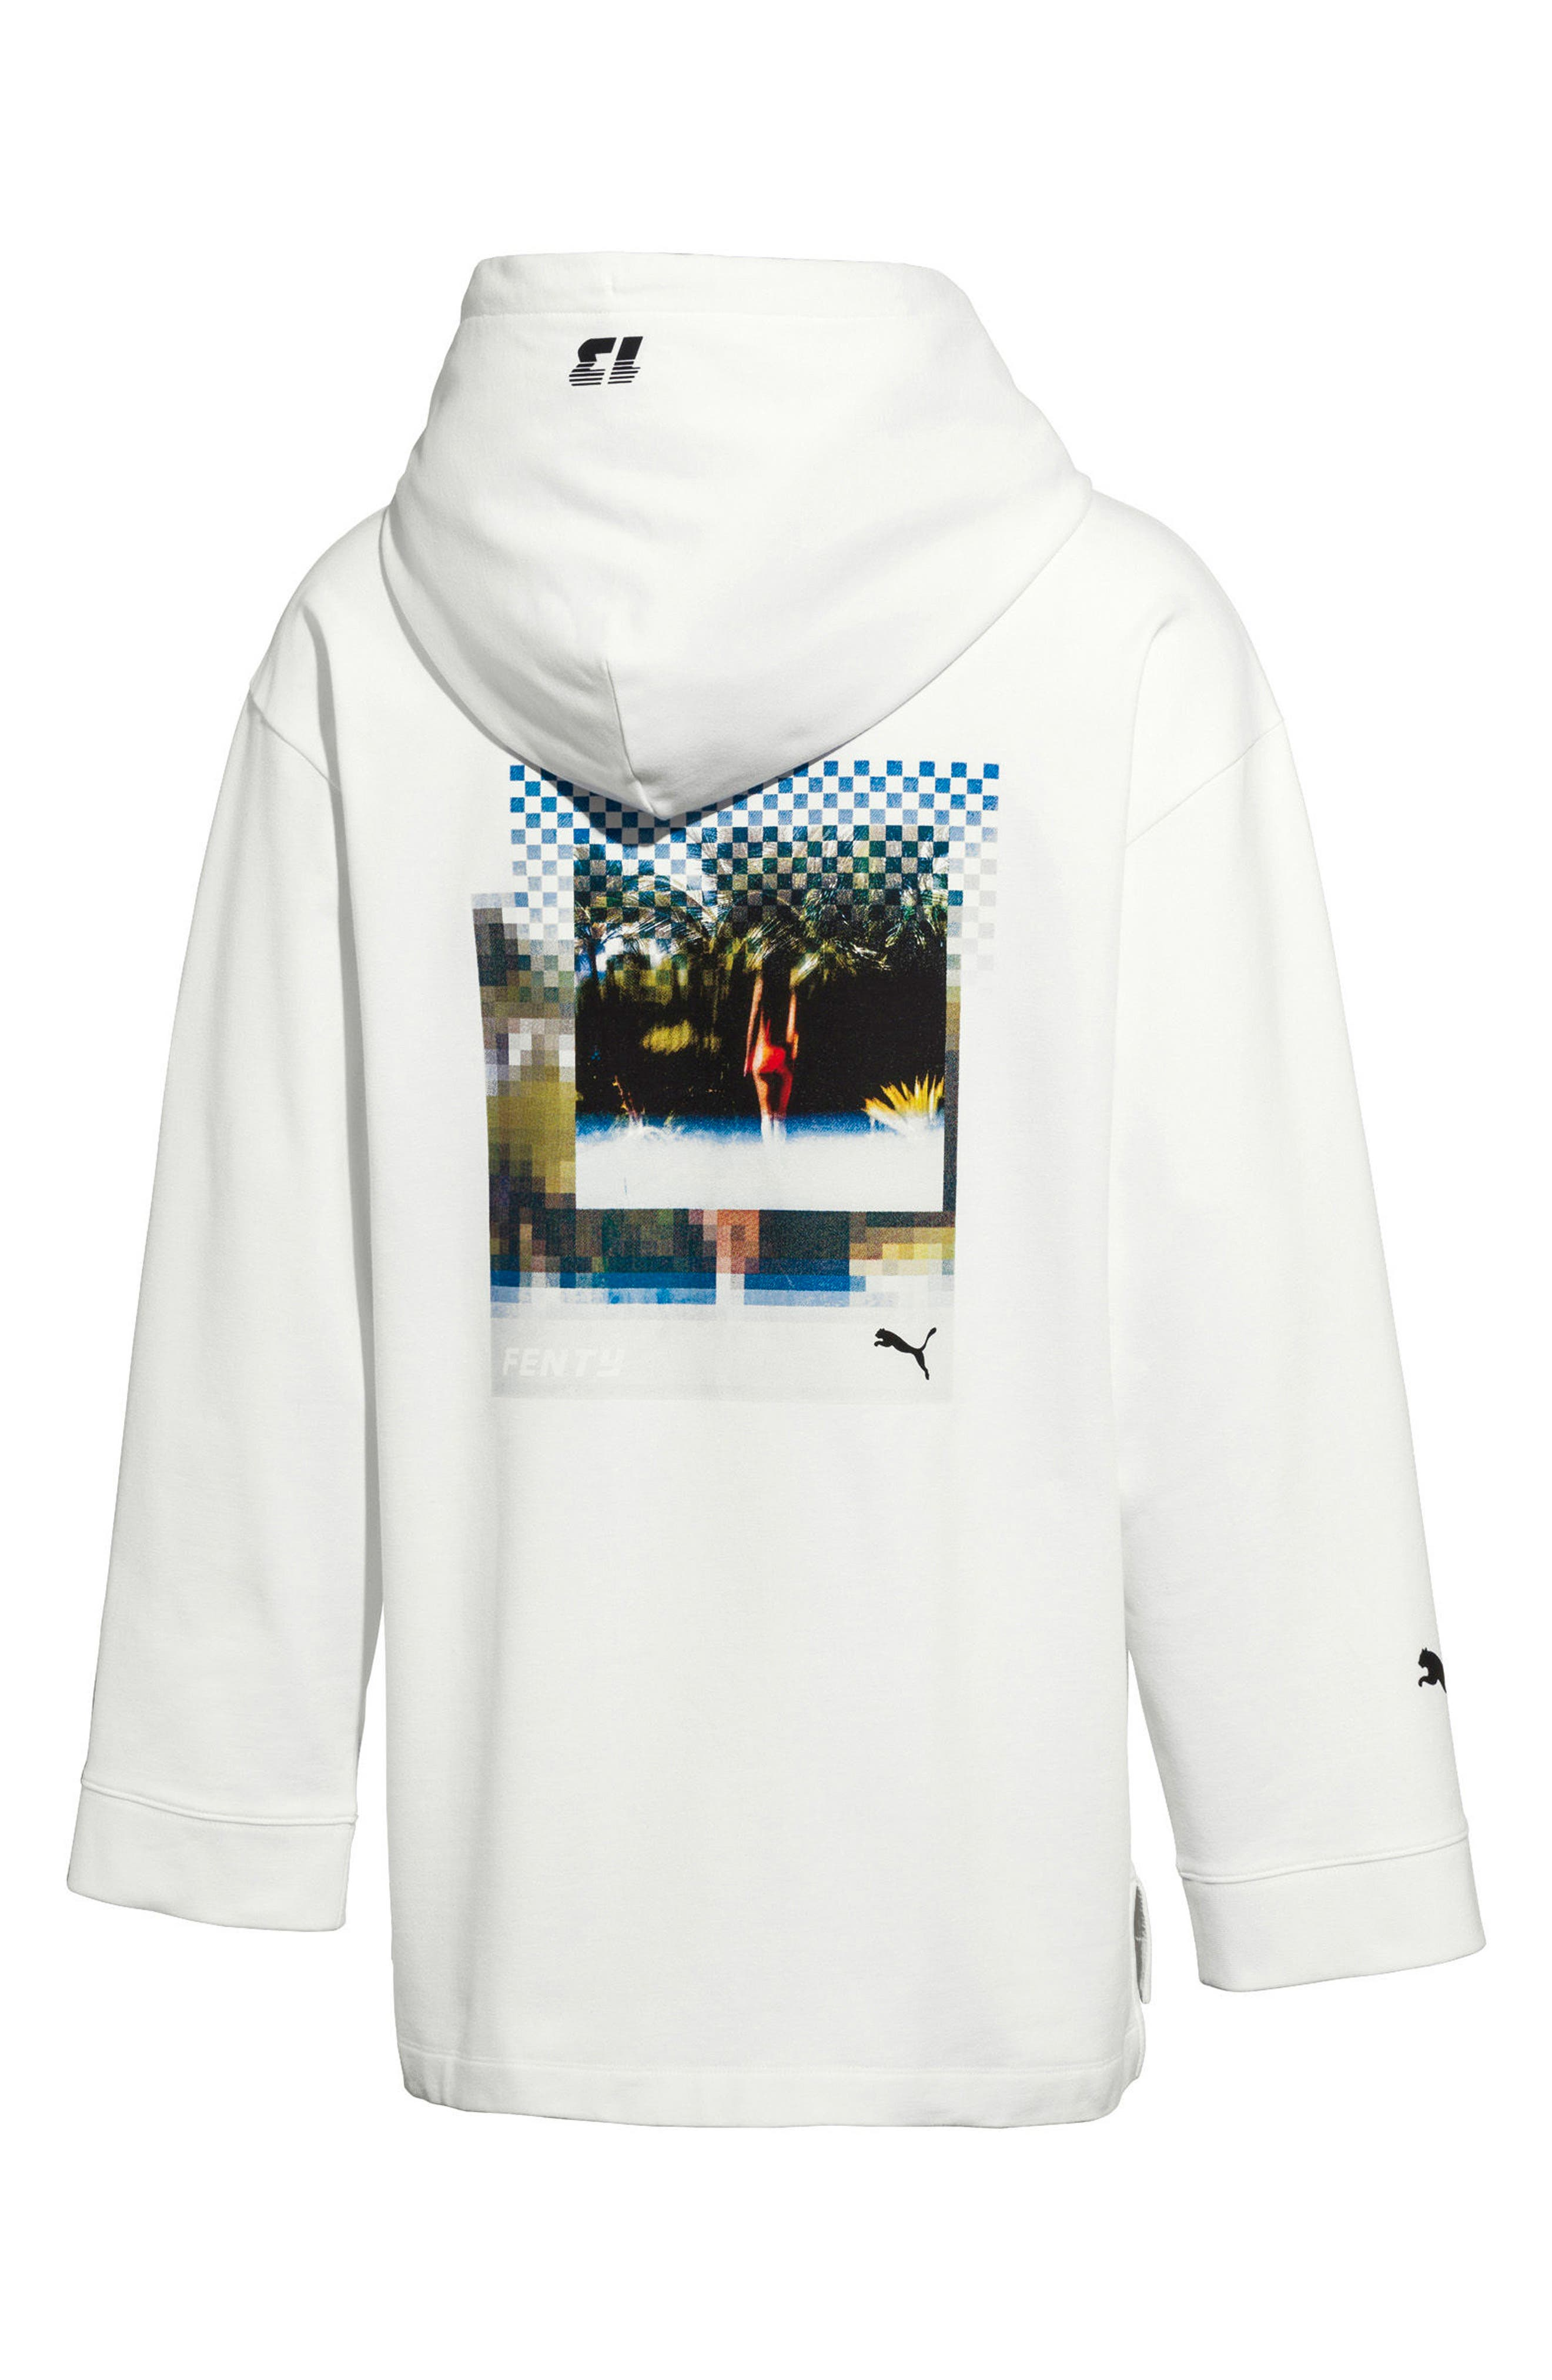 PUMA by Rihanna Graphic Hoodie,                             Alternate thumbnail 2, color,                             100